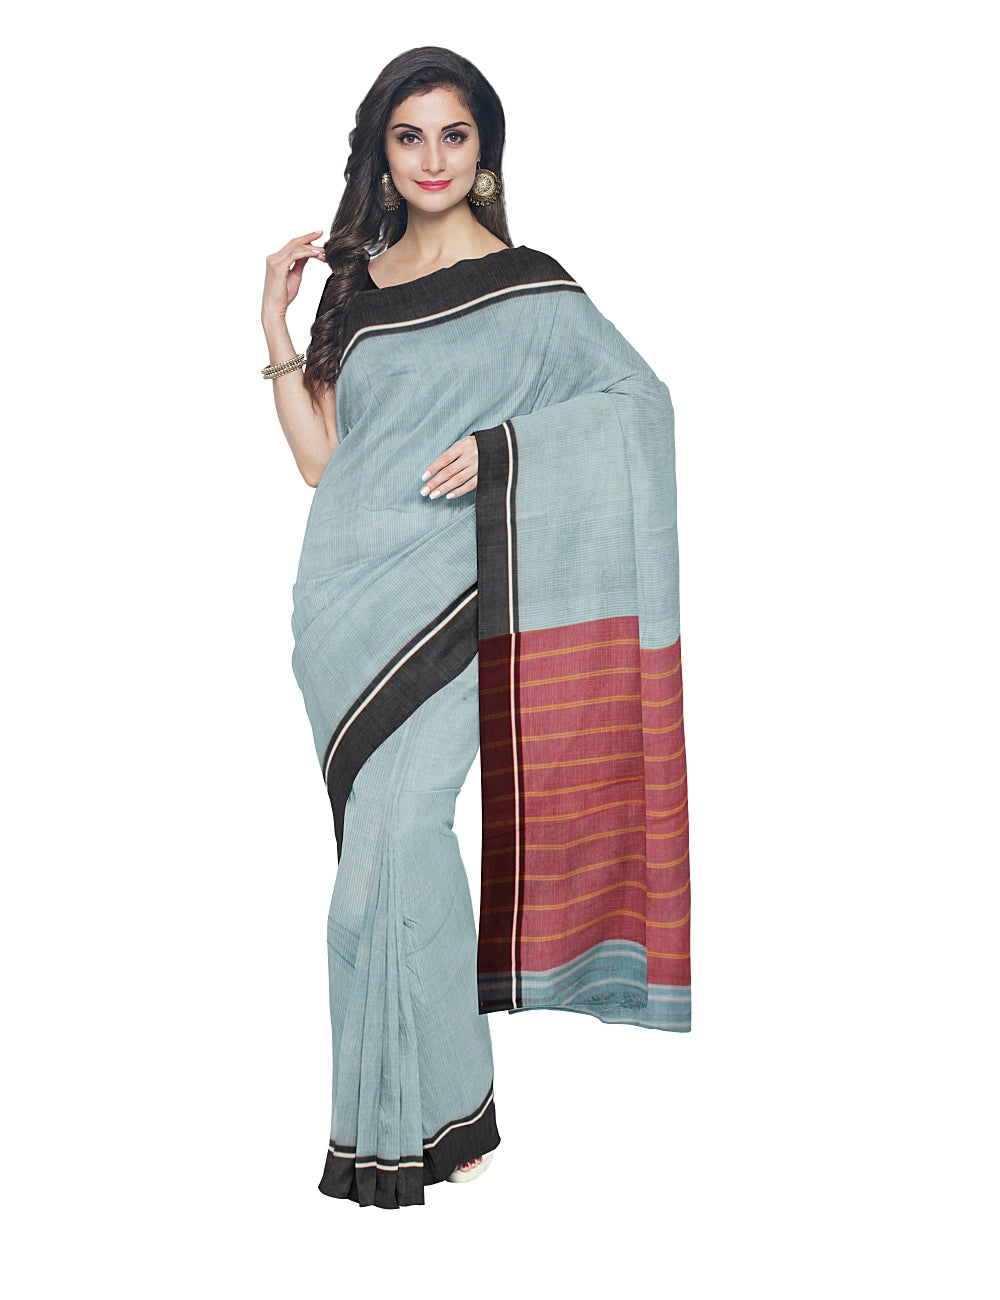 Patteda Anchu Sky Blue Checks Handwoven Saree